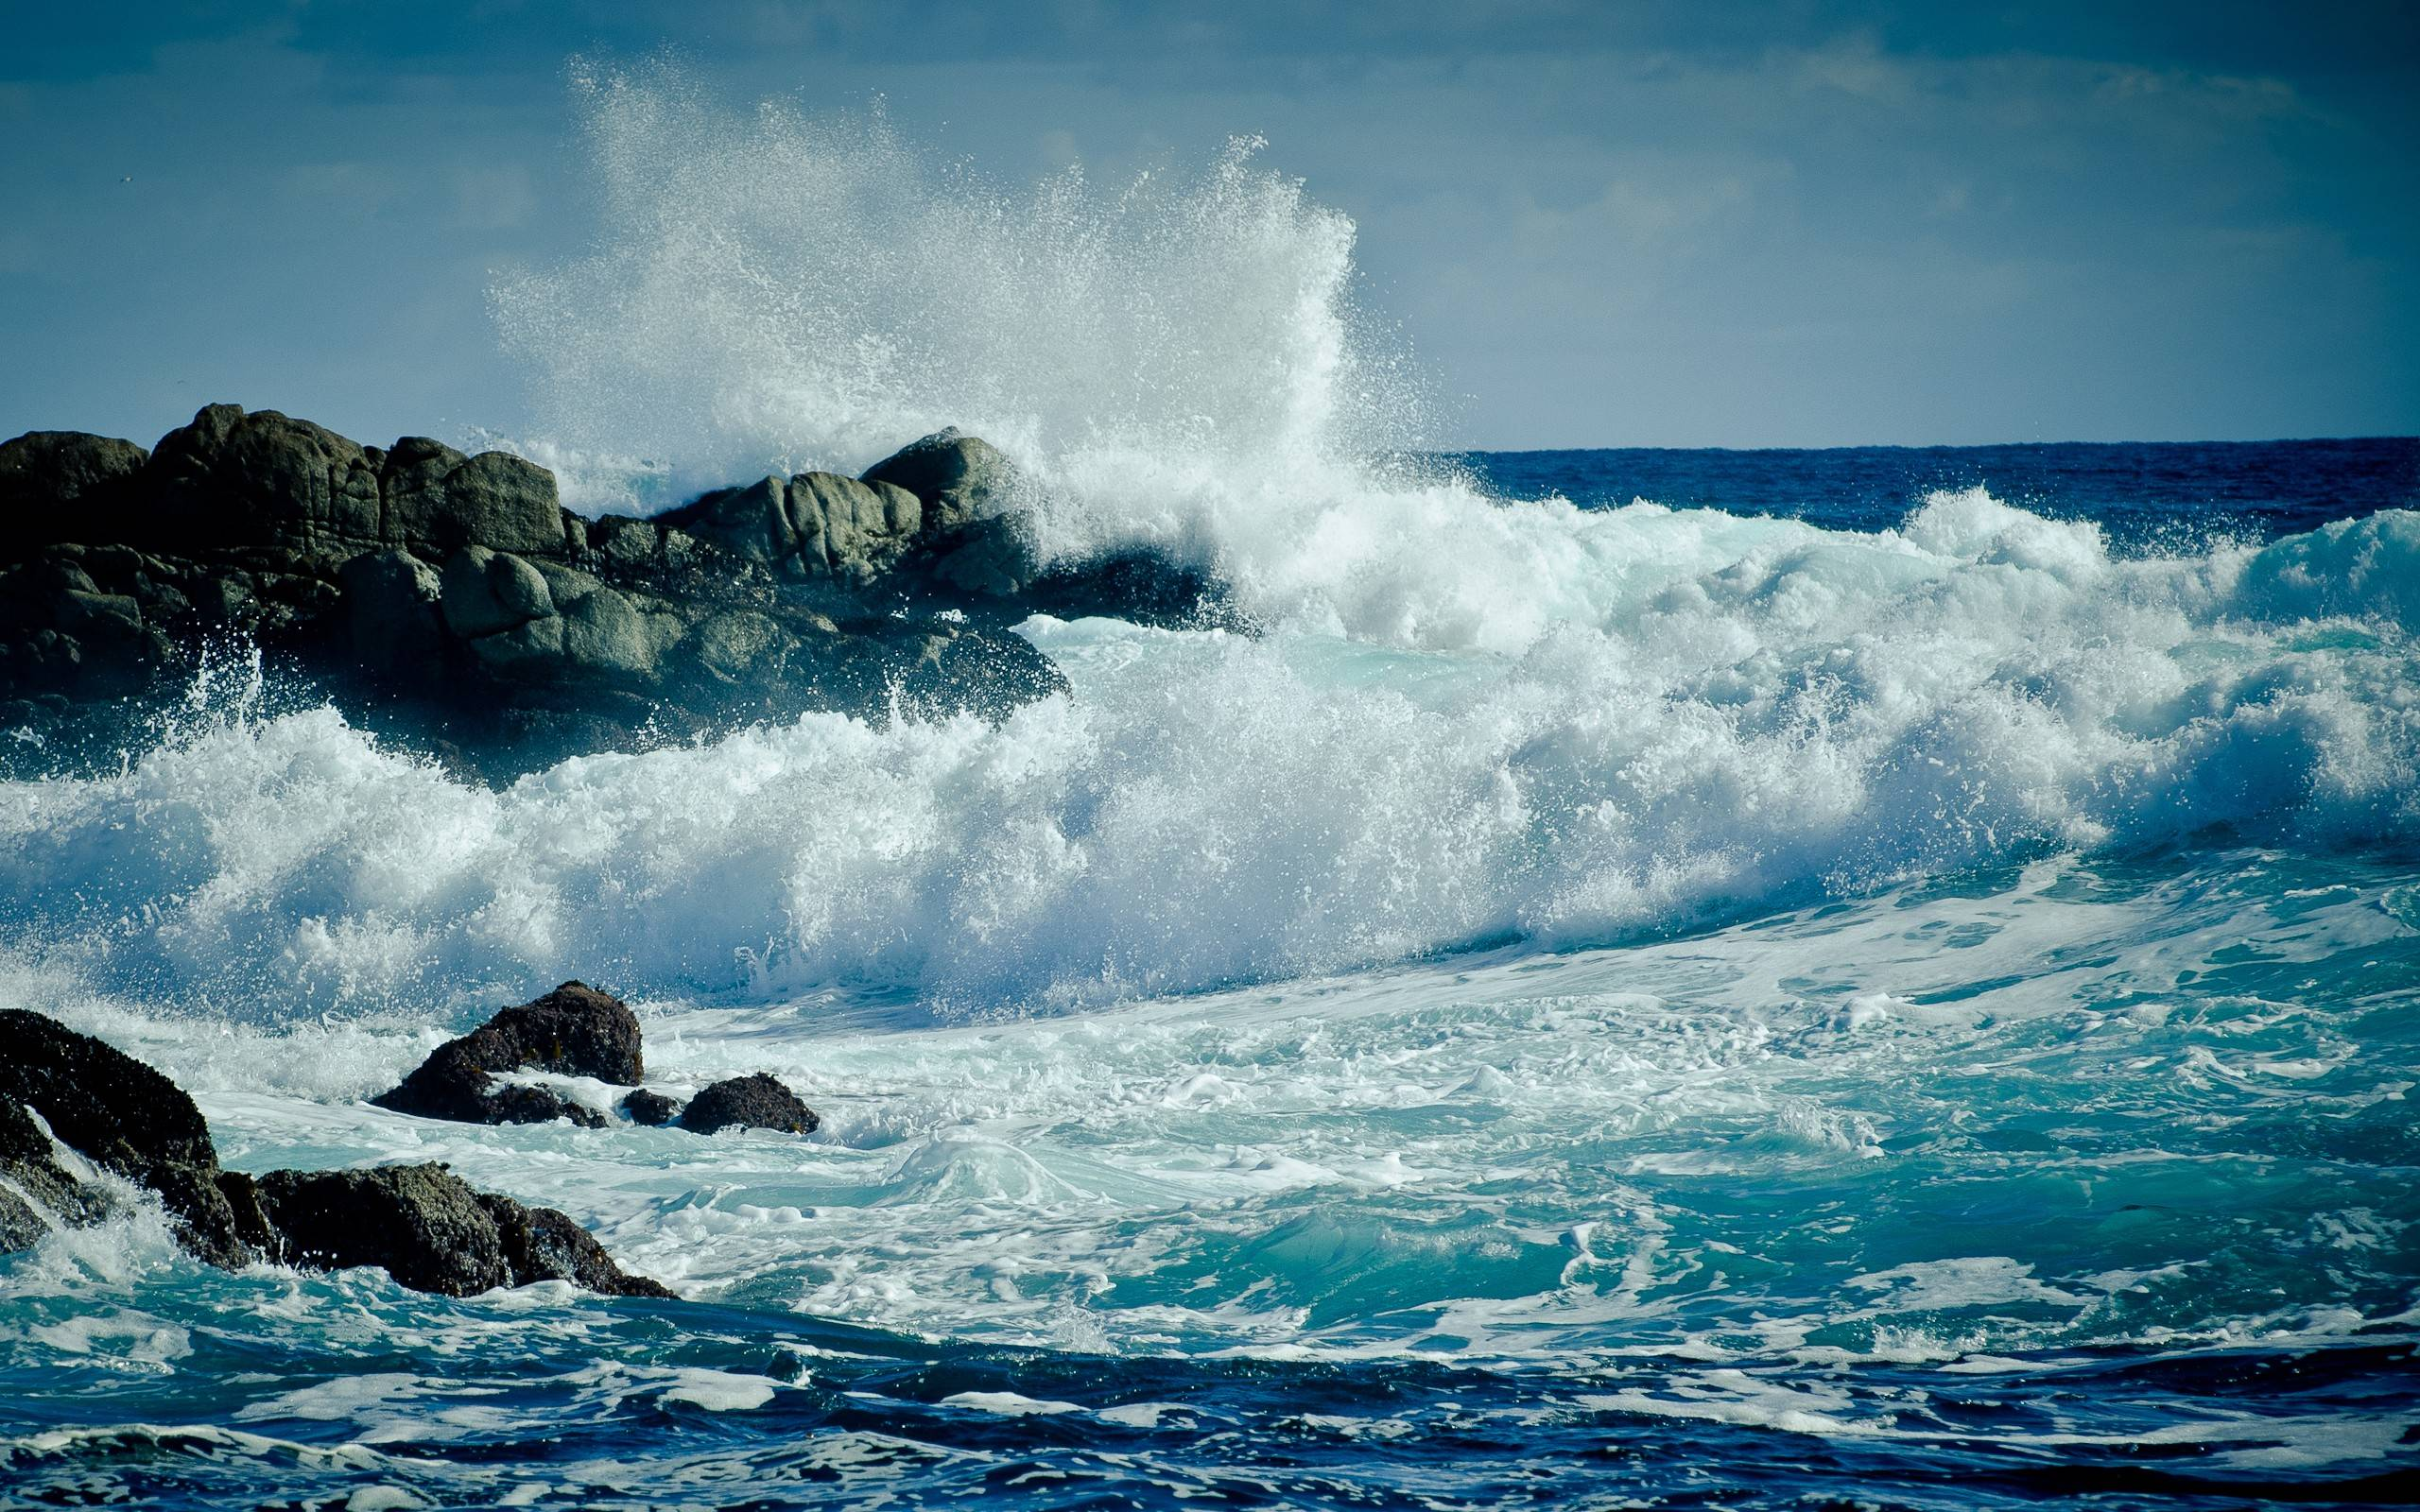 Awesome Waves Wallpaper Widescreen 81235 5165